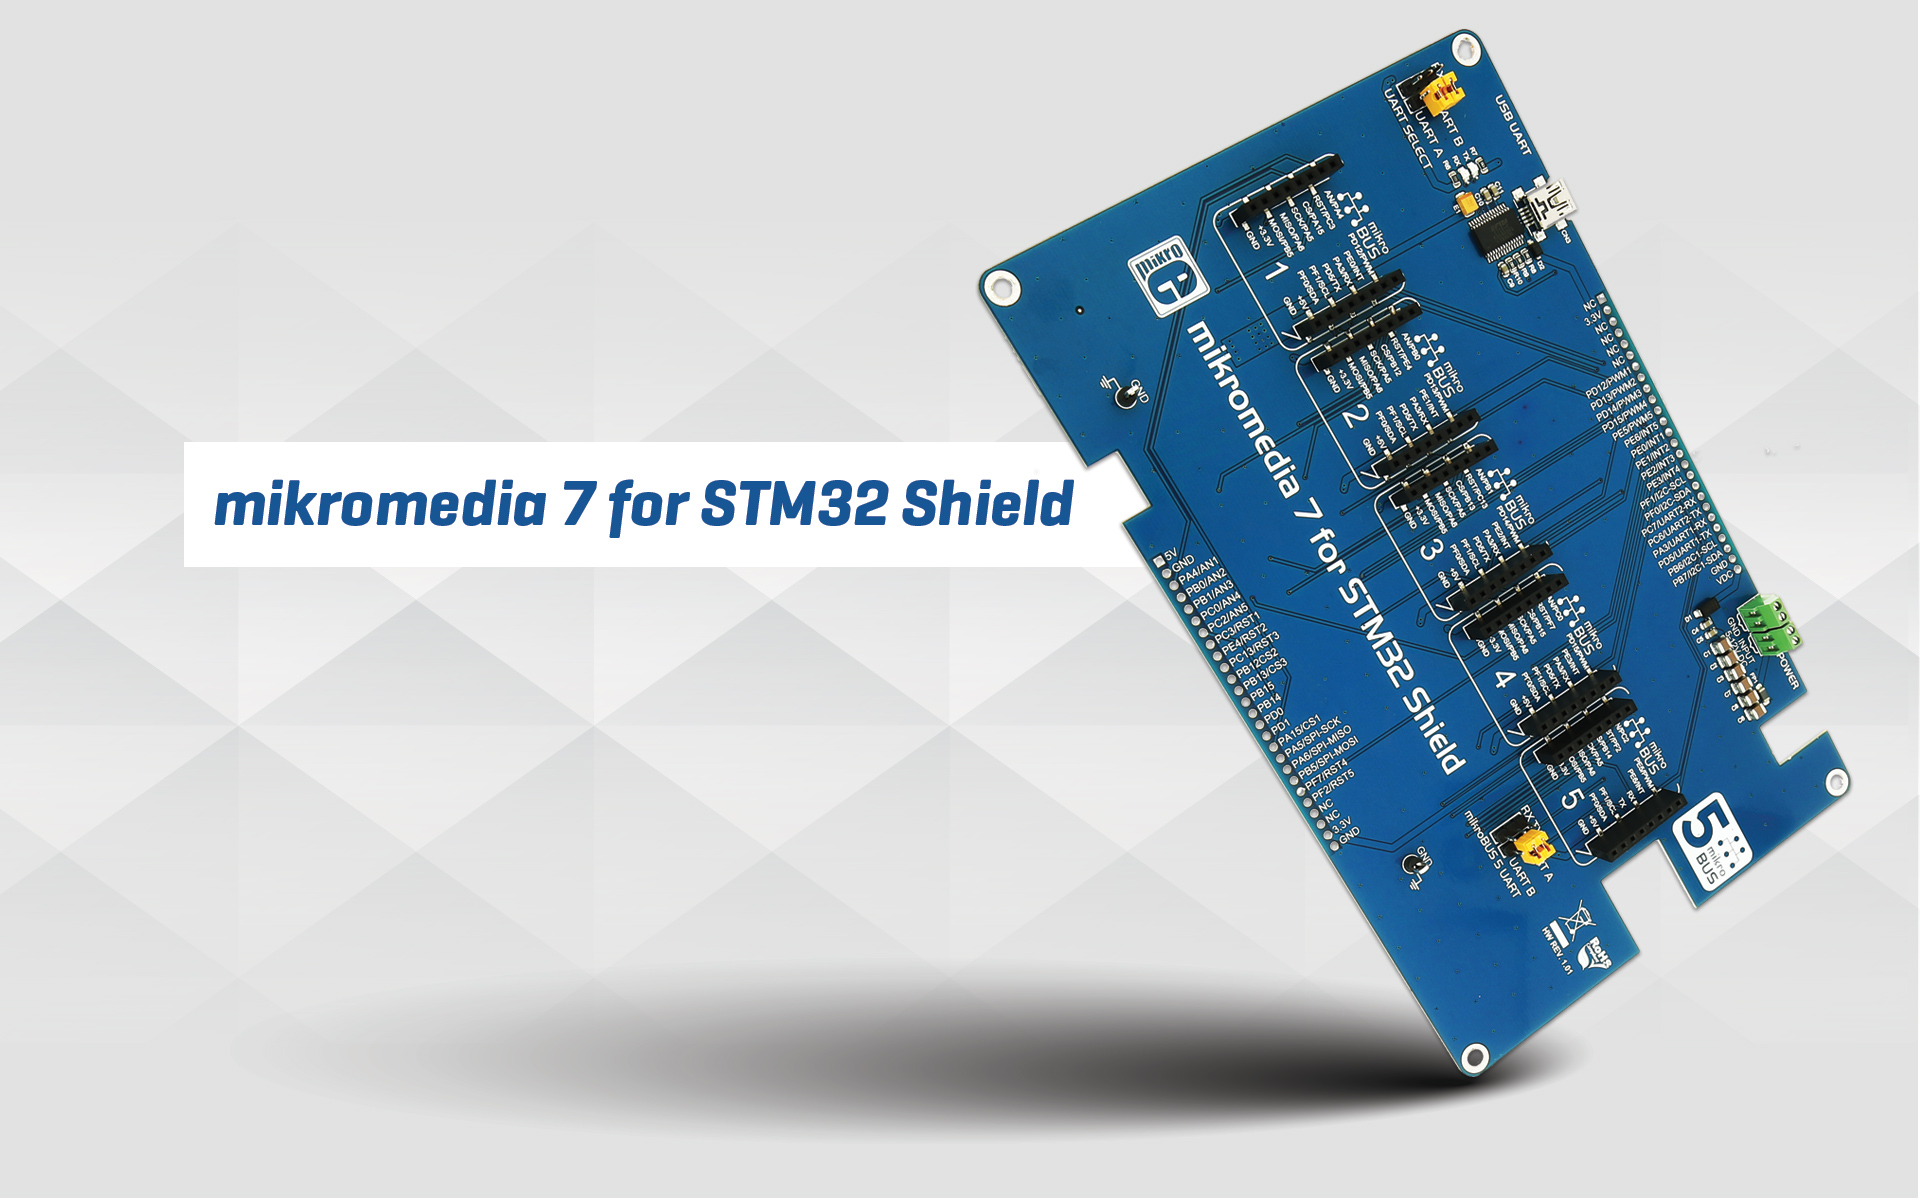 mikromedia 7 for STM32 Shield - five mikroBUS™ sockets